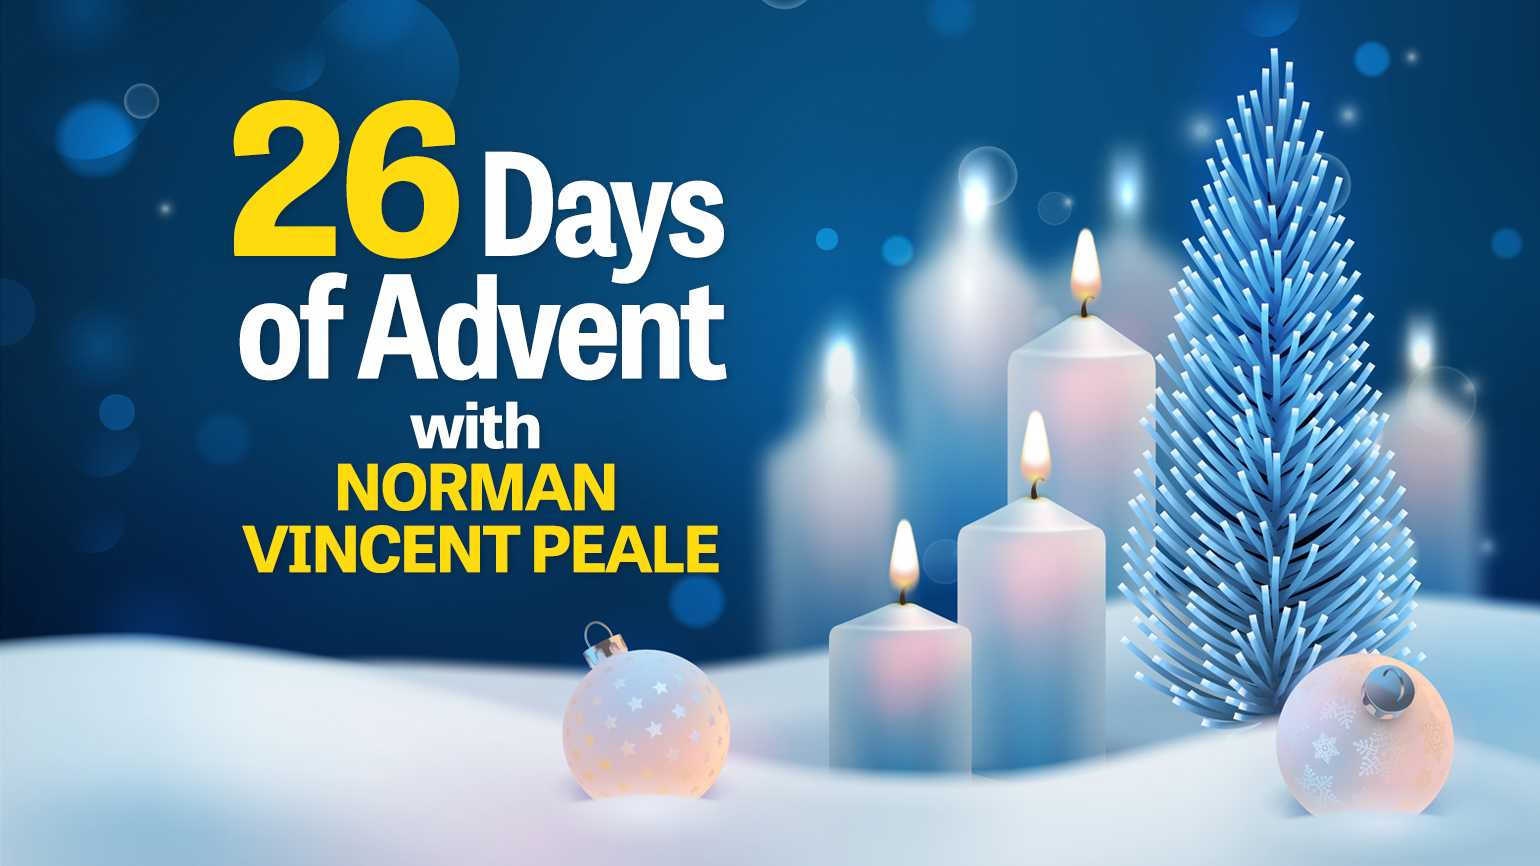 26 Days of Advent with Norman Vincent Peale